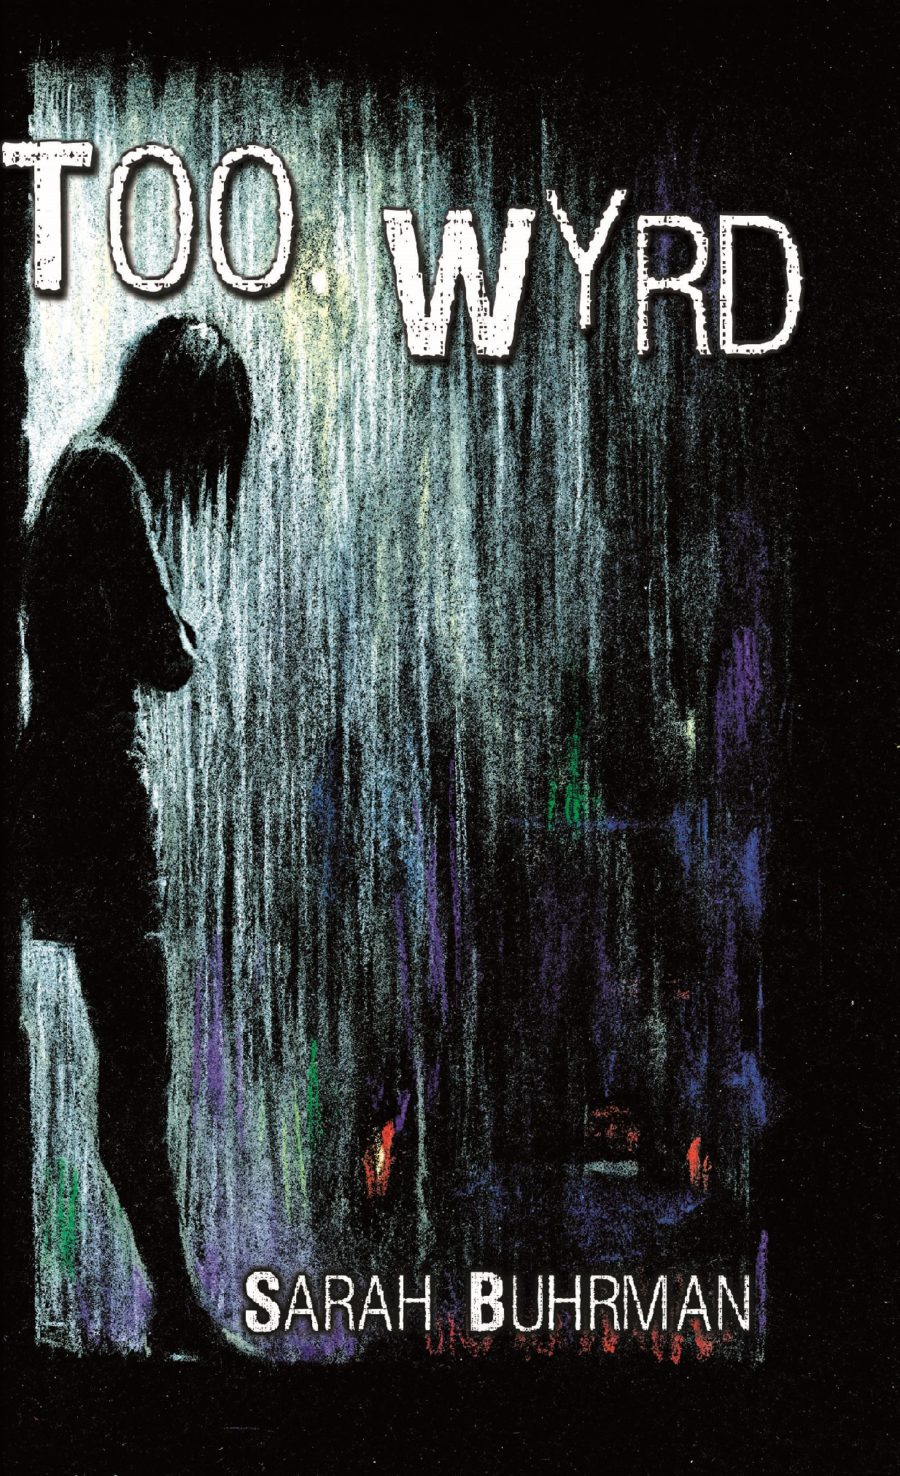 Too Wyrd Front cover